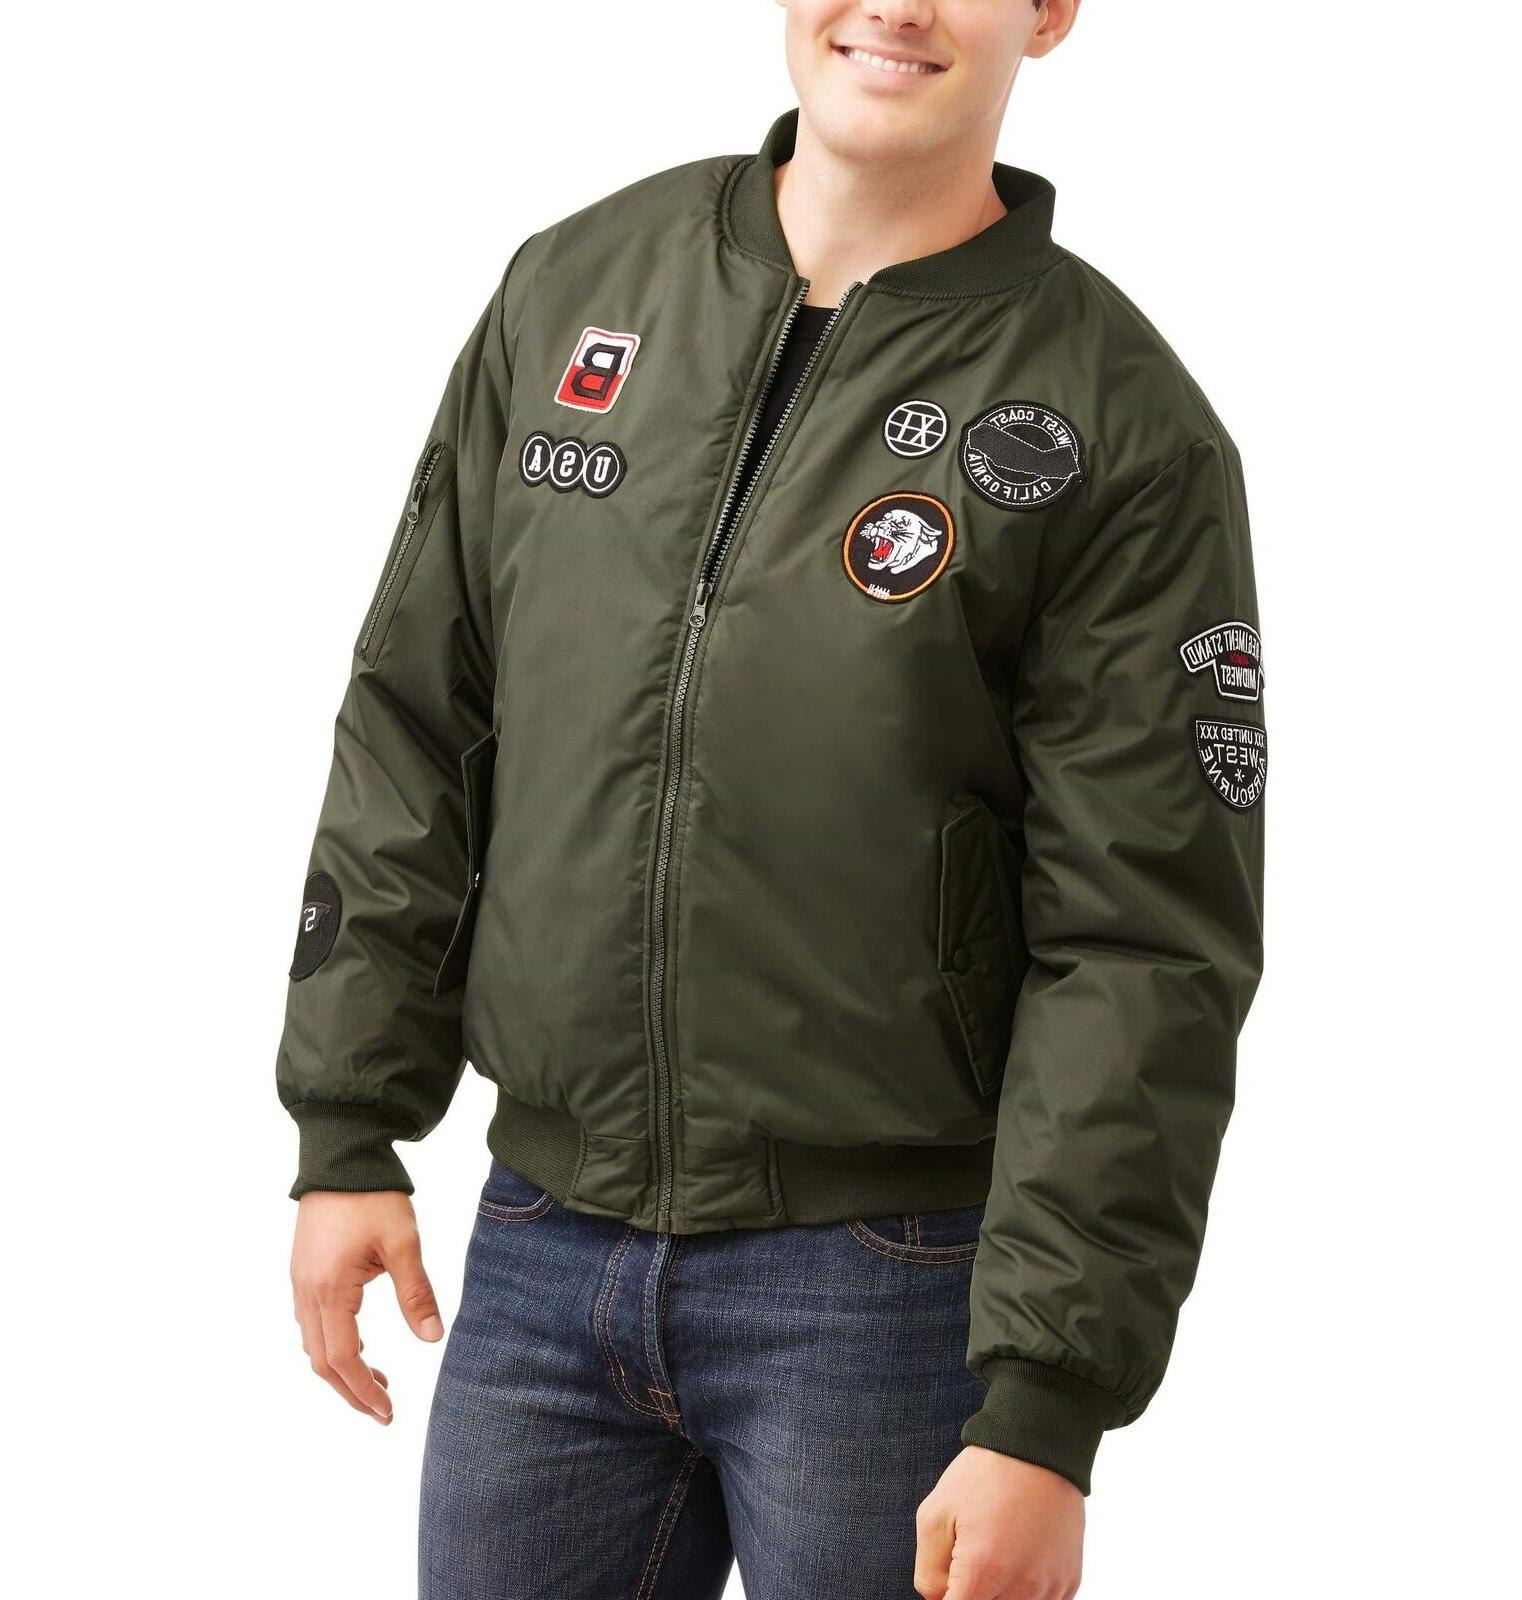 Original Deluxe Men's Bomber Jacket with Patches - MILITARY